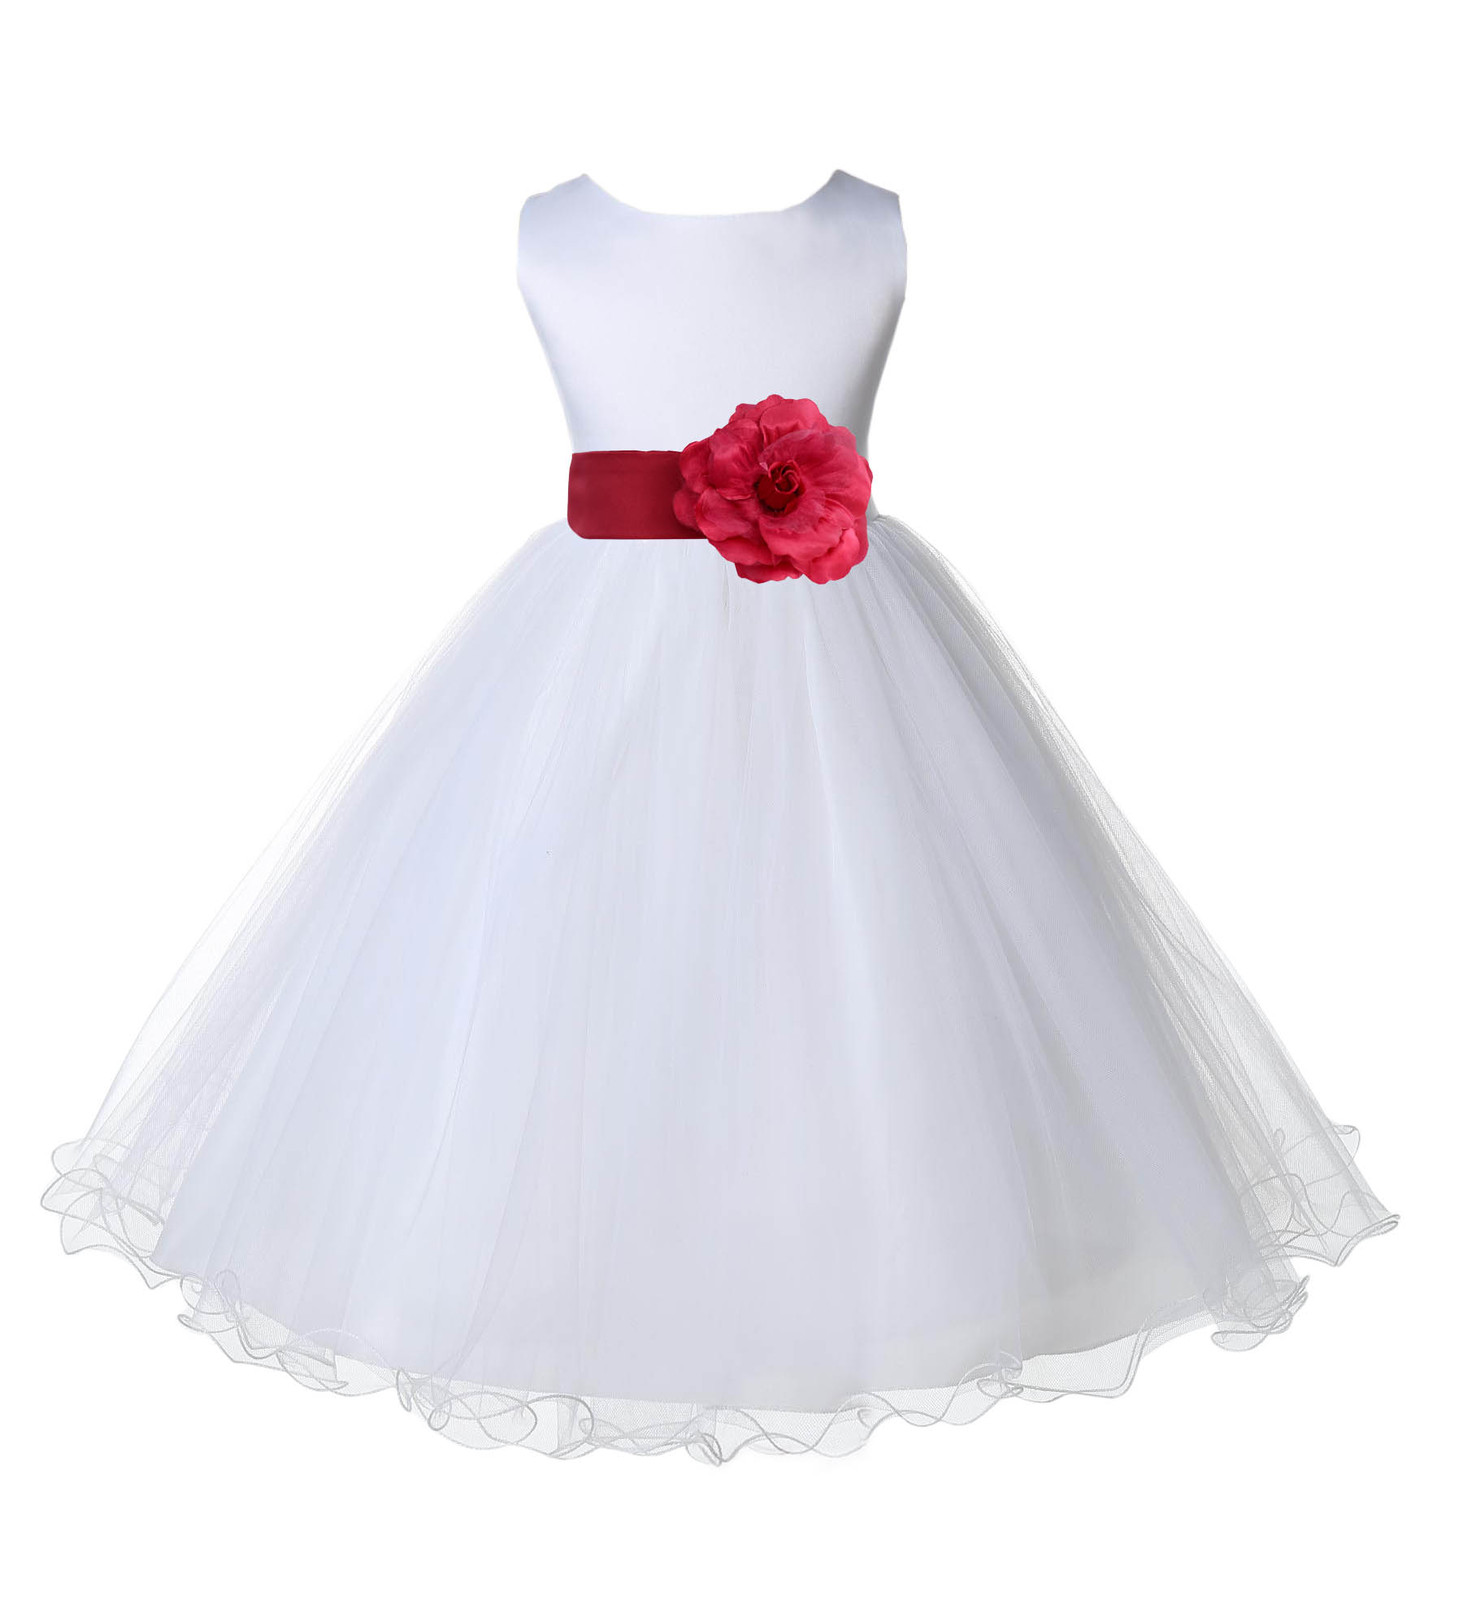 White Rattail edge Tulle Flower Girl dress pageant wedding easter party new 829T